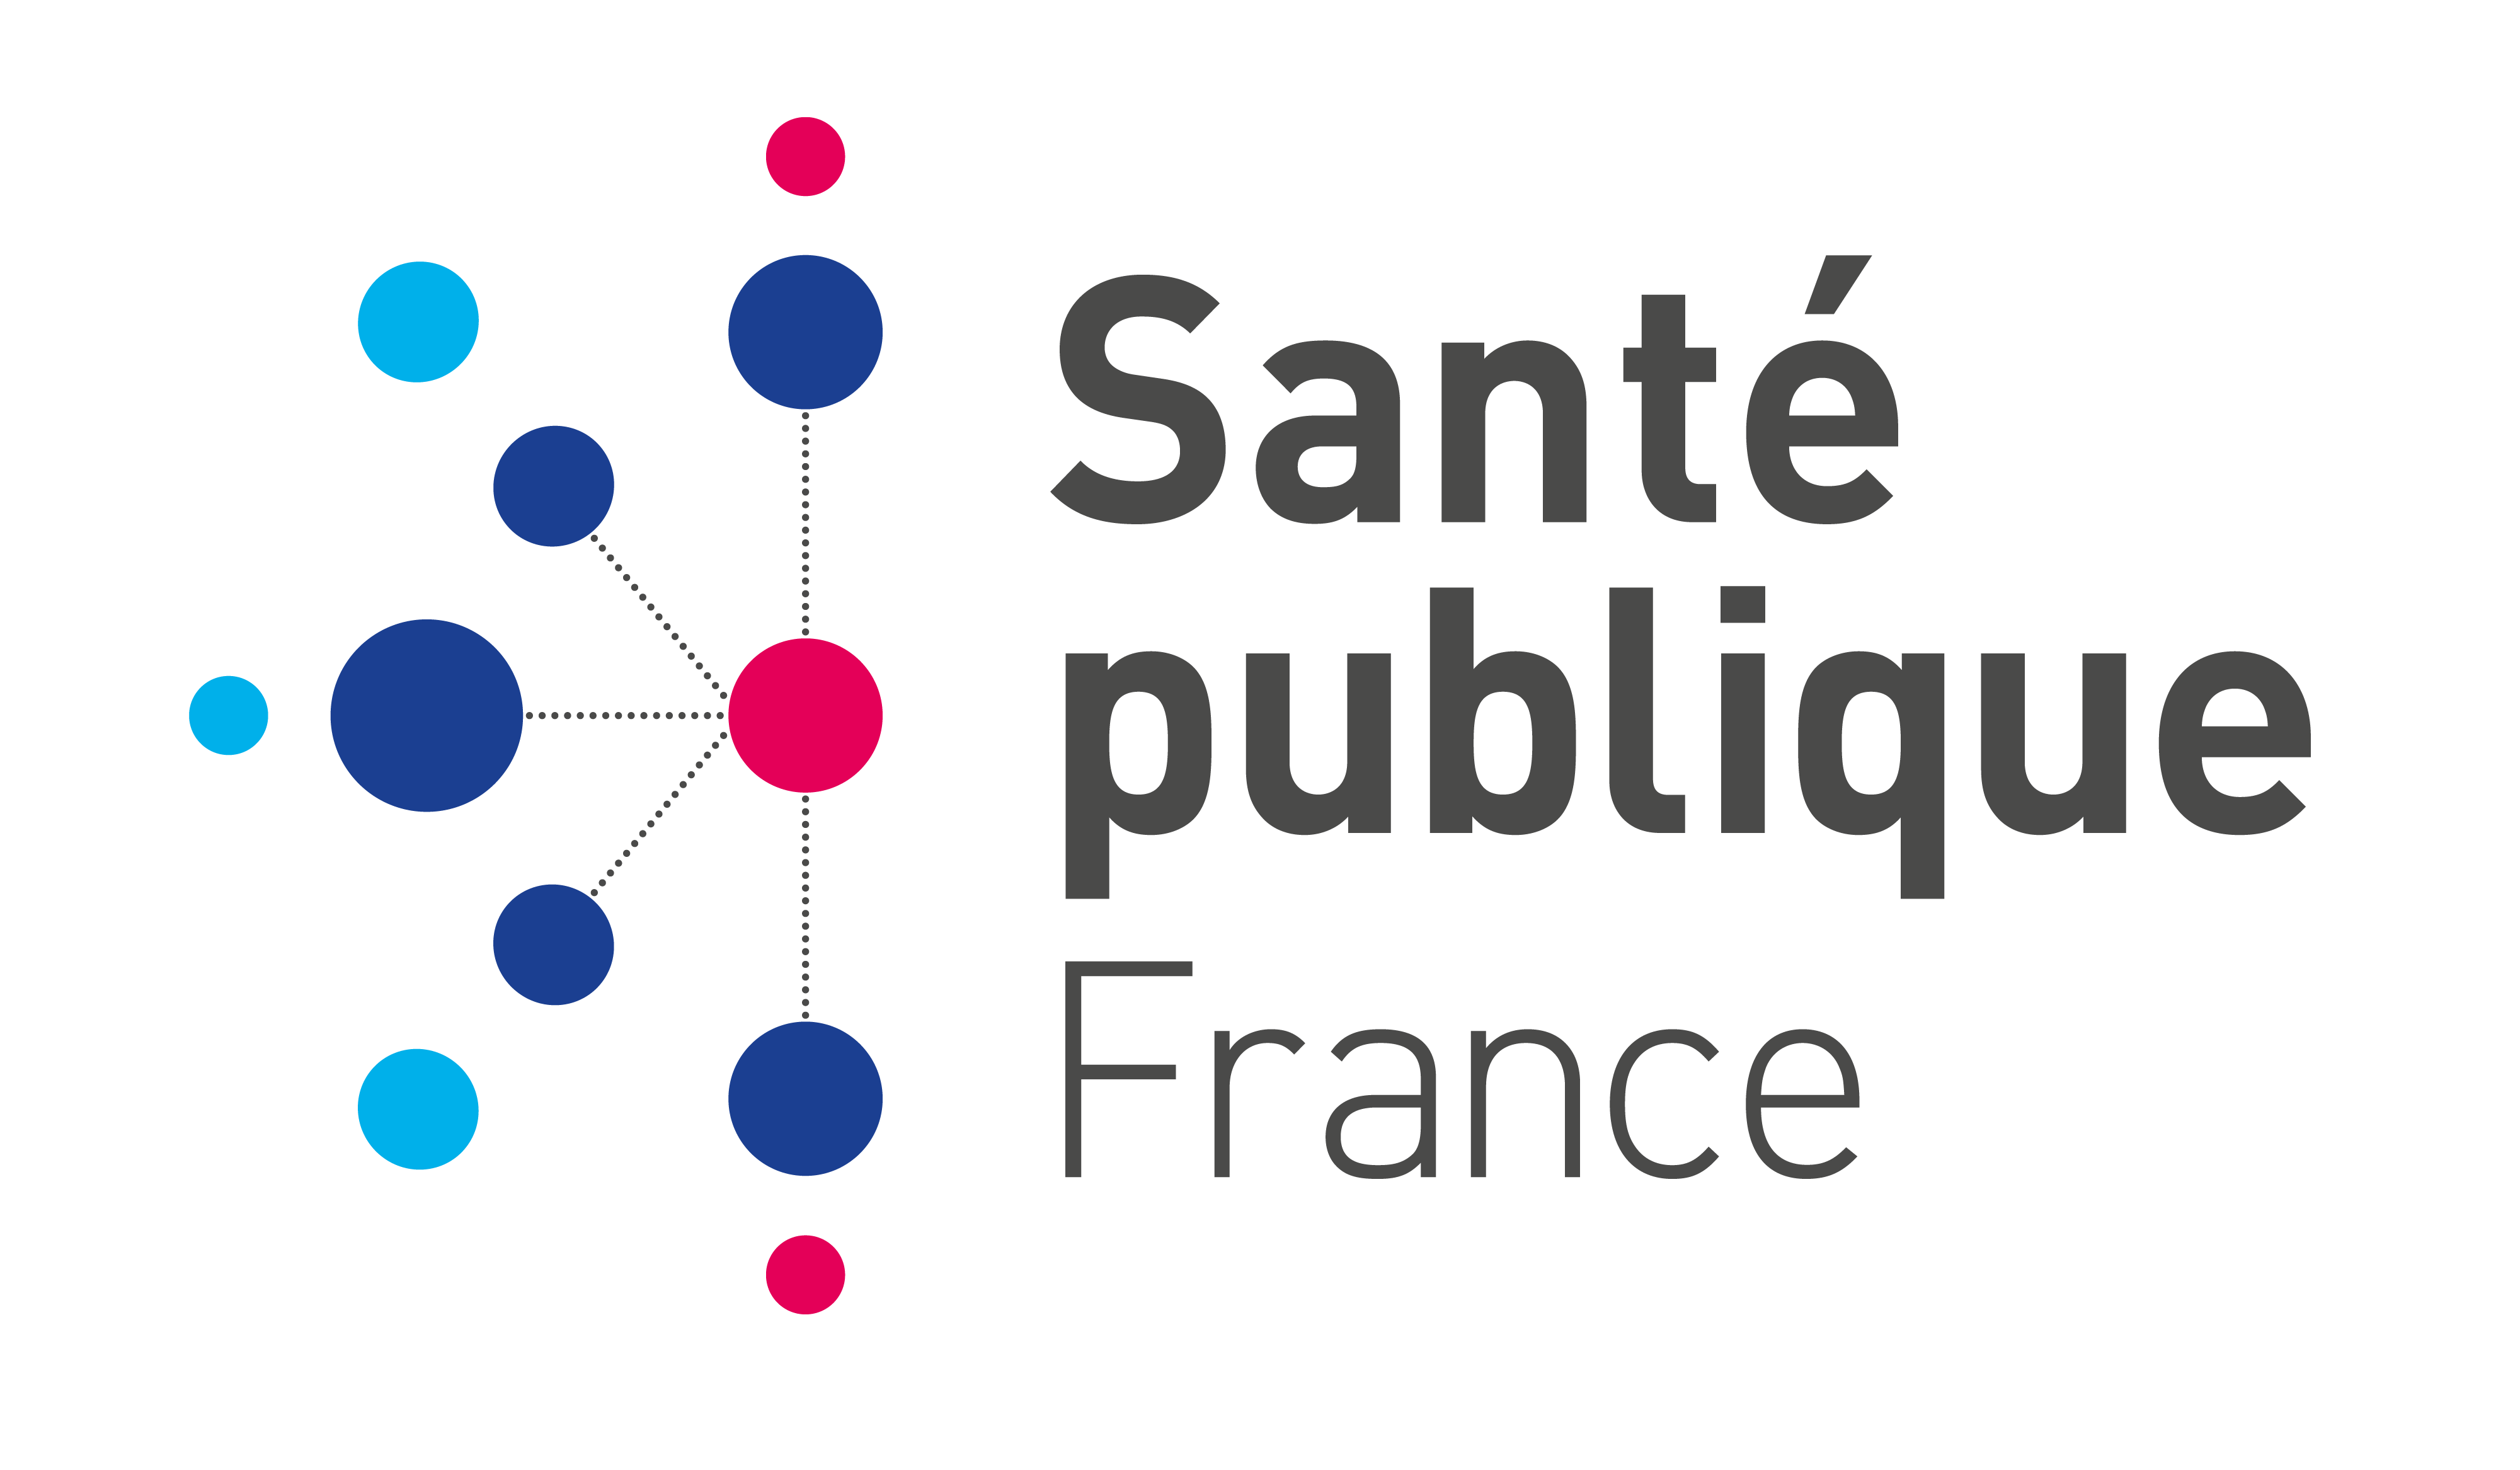 Logo-Sante-publique-france.png